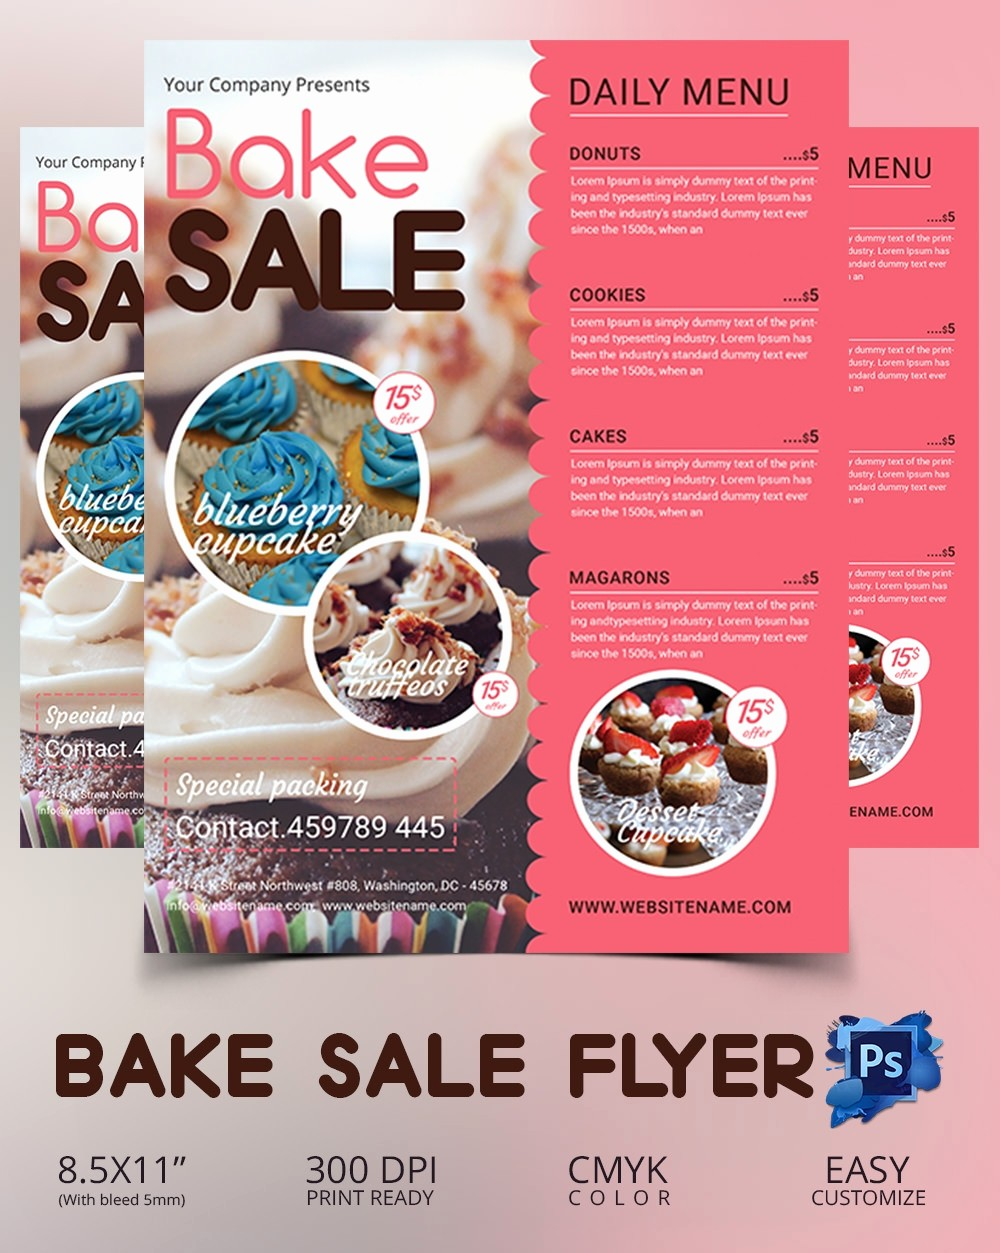 Bake Sale Flyer Template Microsoft Awesome Bake Sale Flyer Template 34 Free Psd Indesign Ai